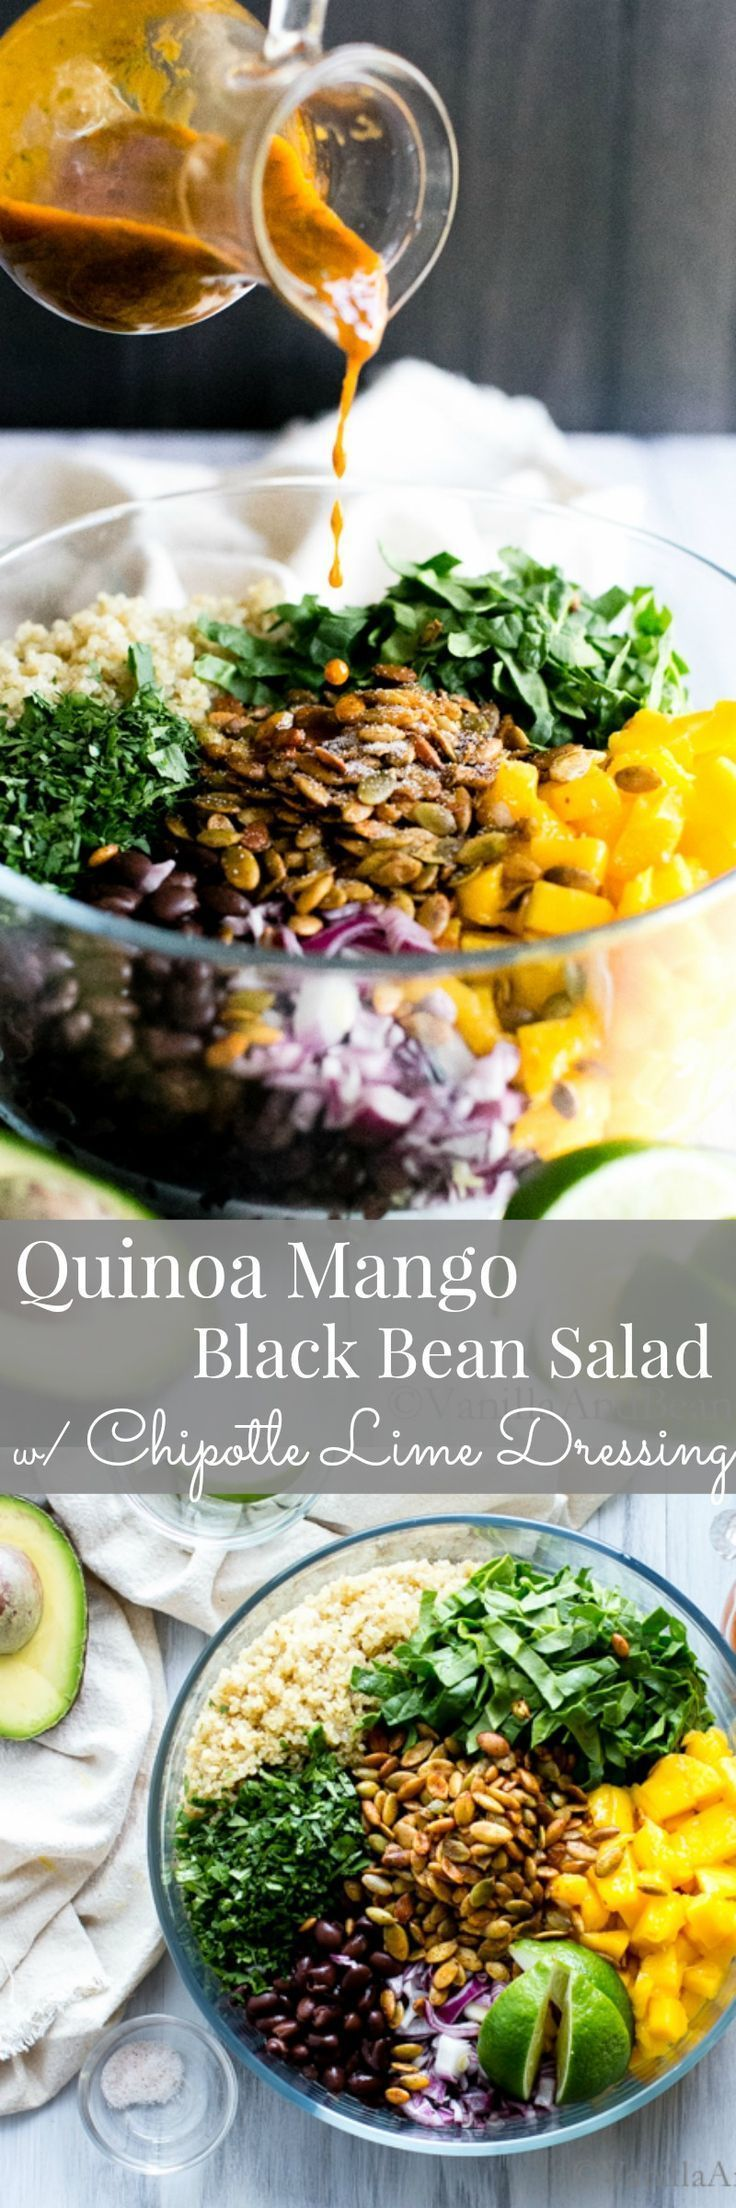 V&B Followers love this hearty salad! Black Beans are a type of pulse, a delicious, nutrient-rich food. 2016 is the International Year of Pulses! Take the #PulsePledge with me at http://PulsePledge.com ! #ad   Vegan + GF